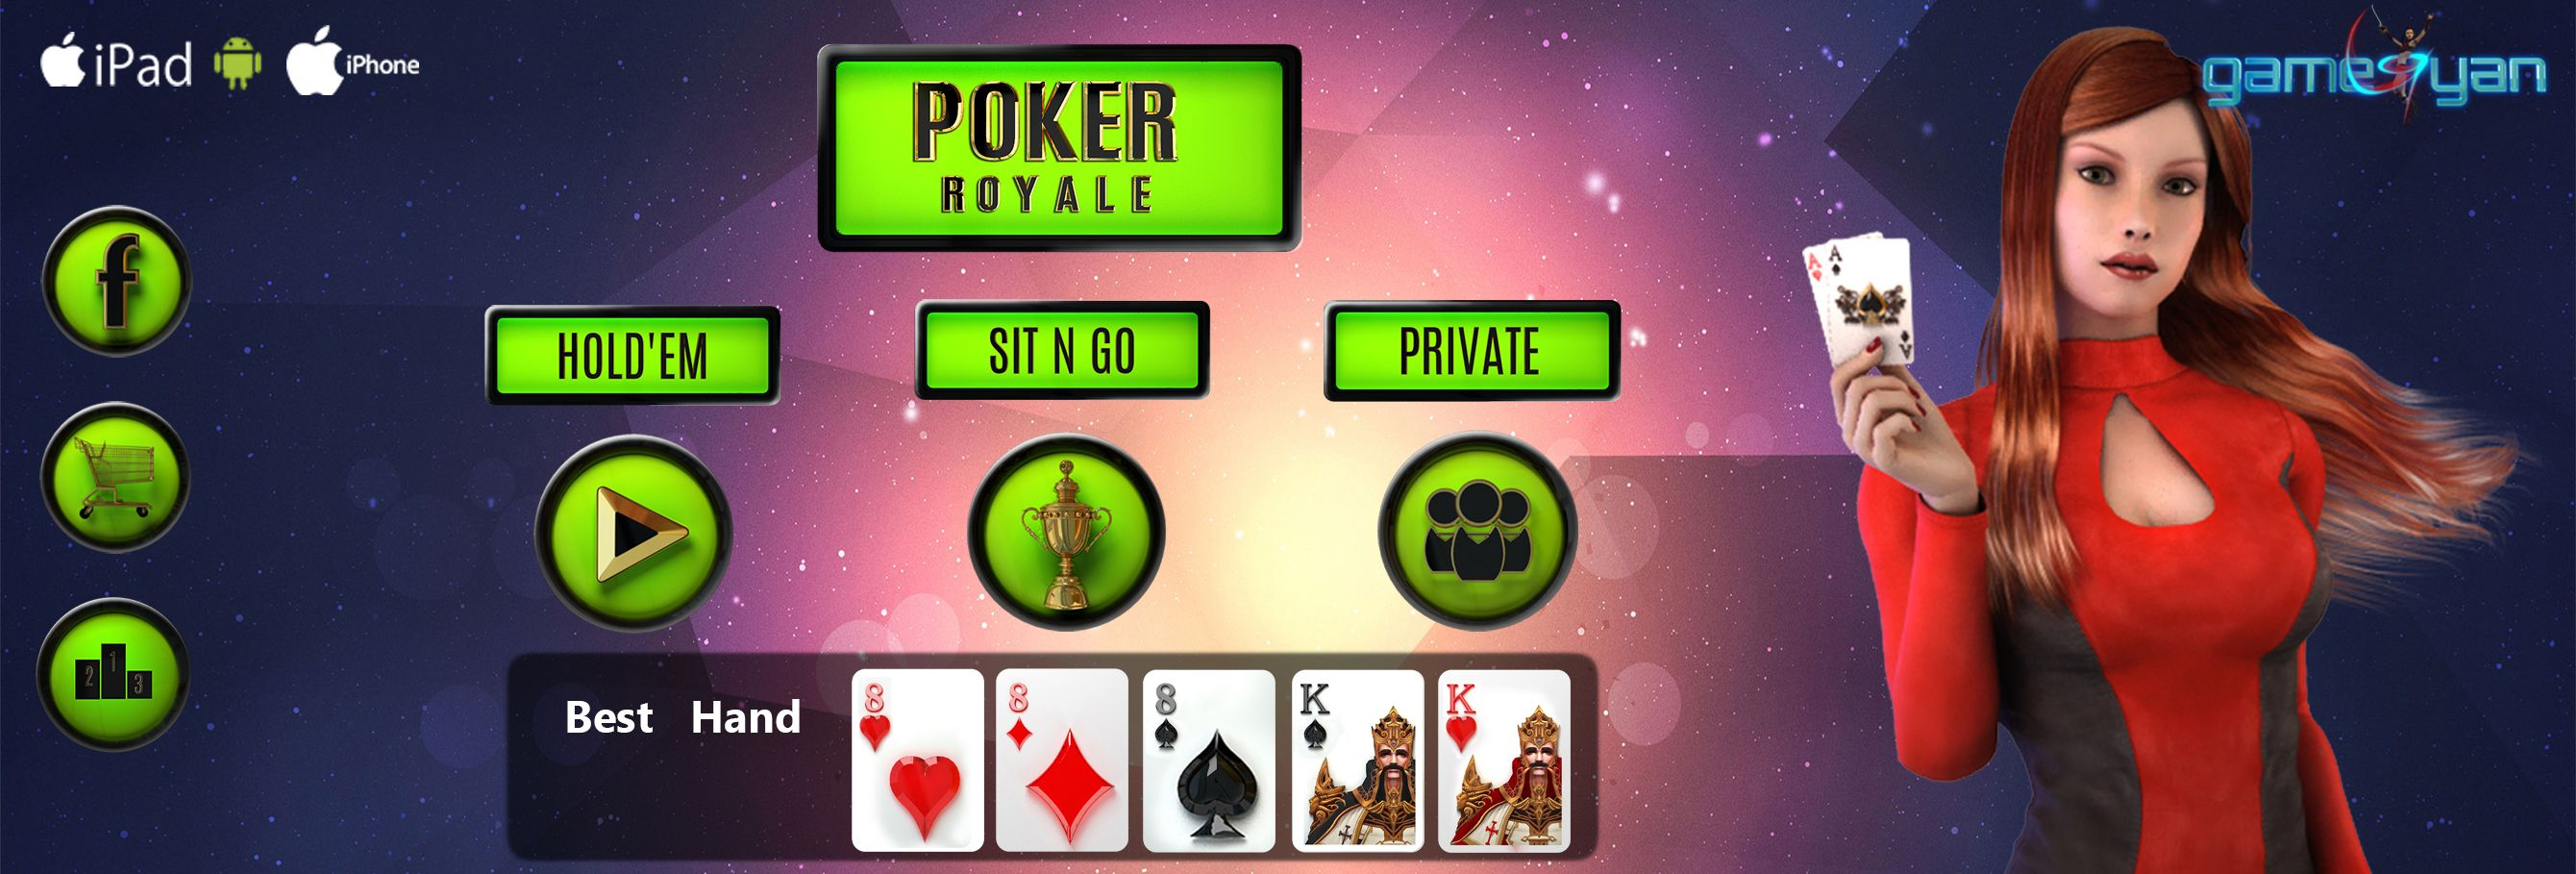 Royale Poker is Multi Player Game Design and Development by GameYan Studio